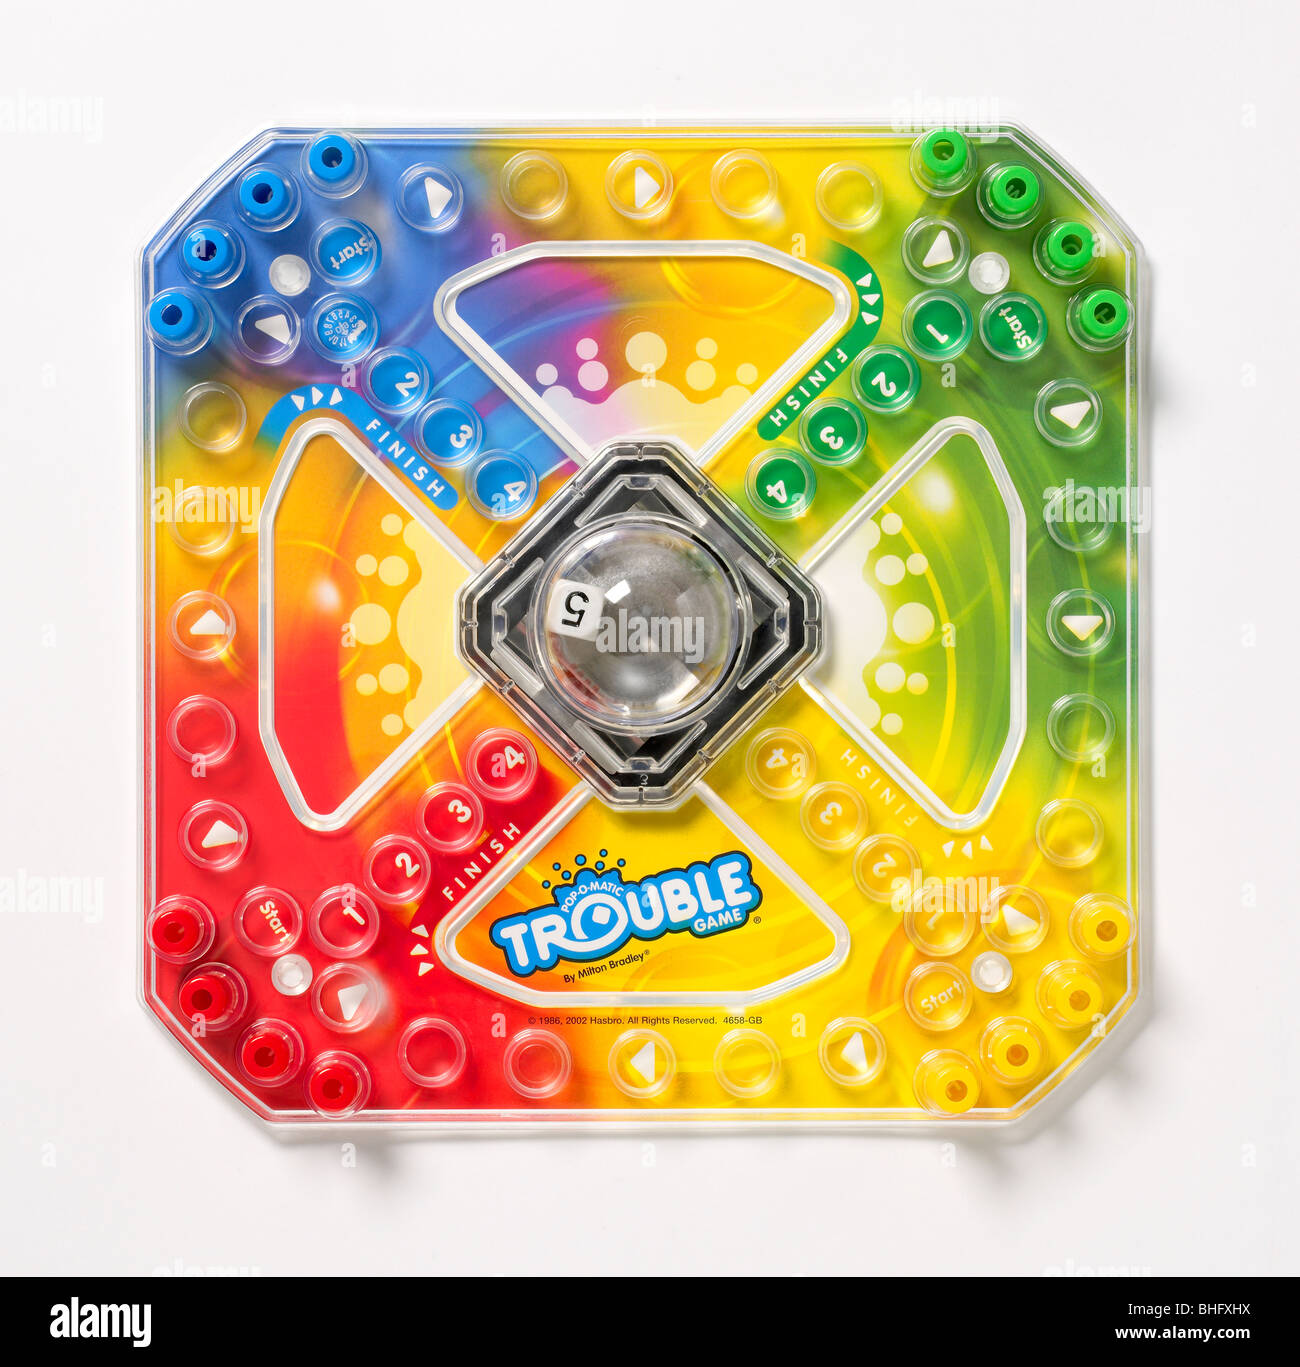 Trouble game board - Stock Image